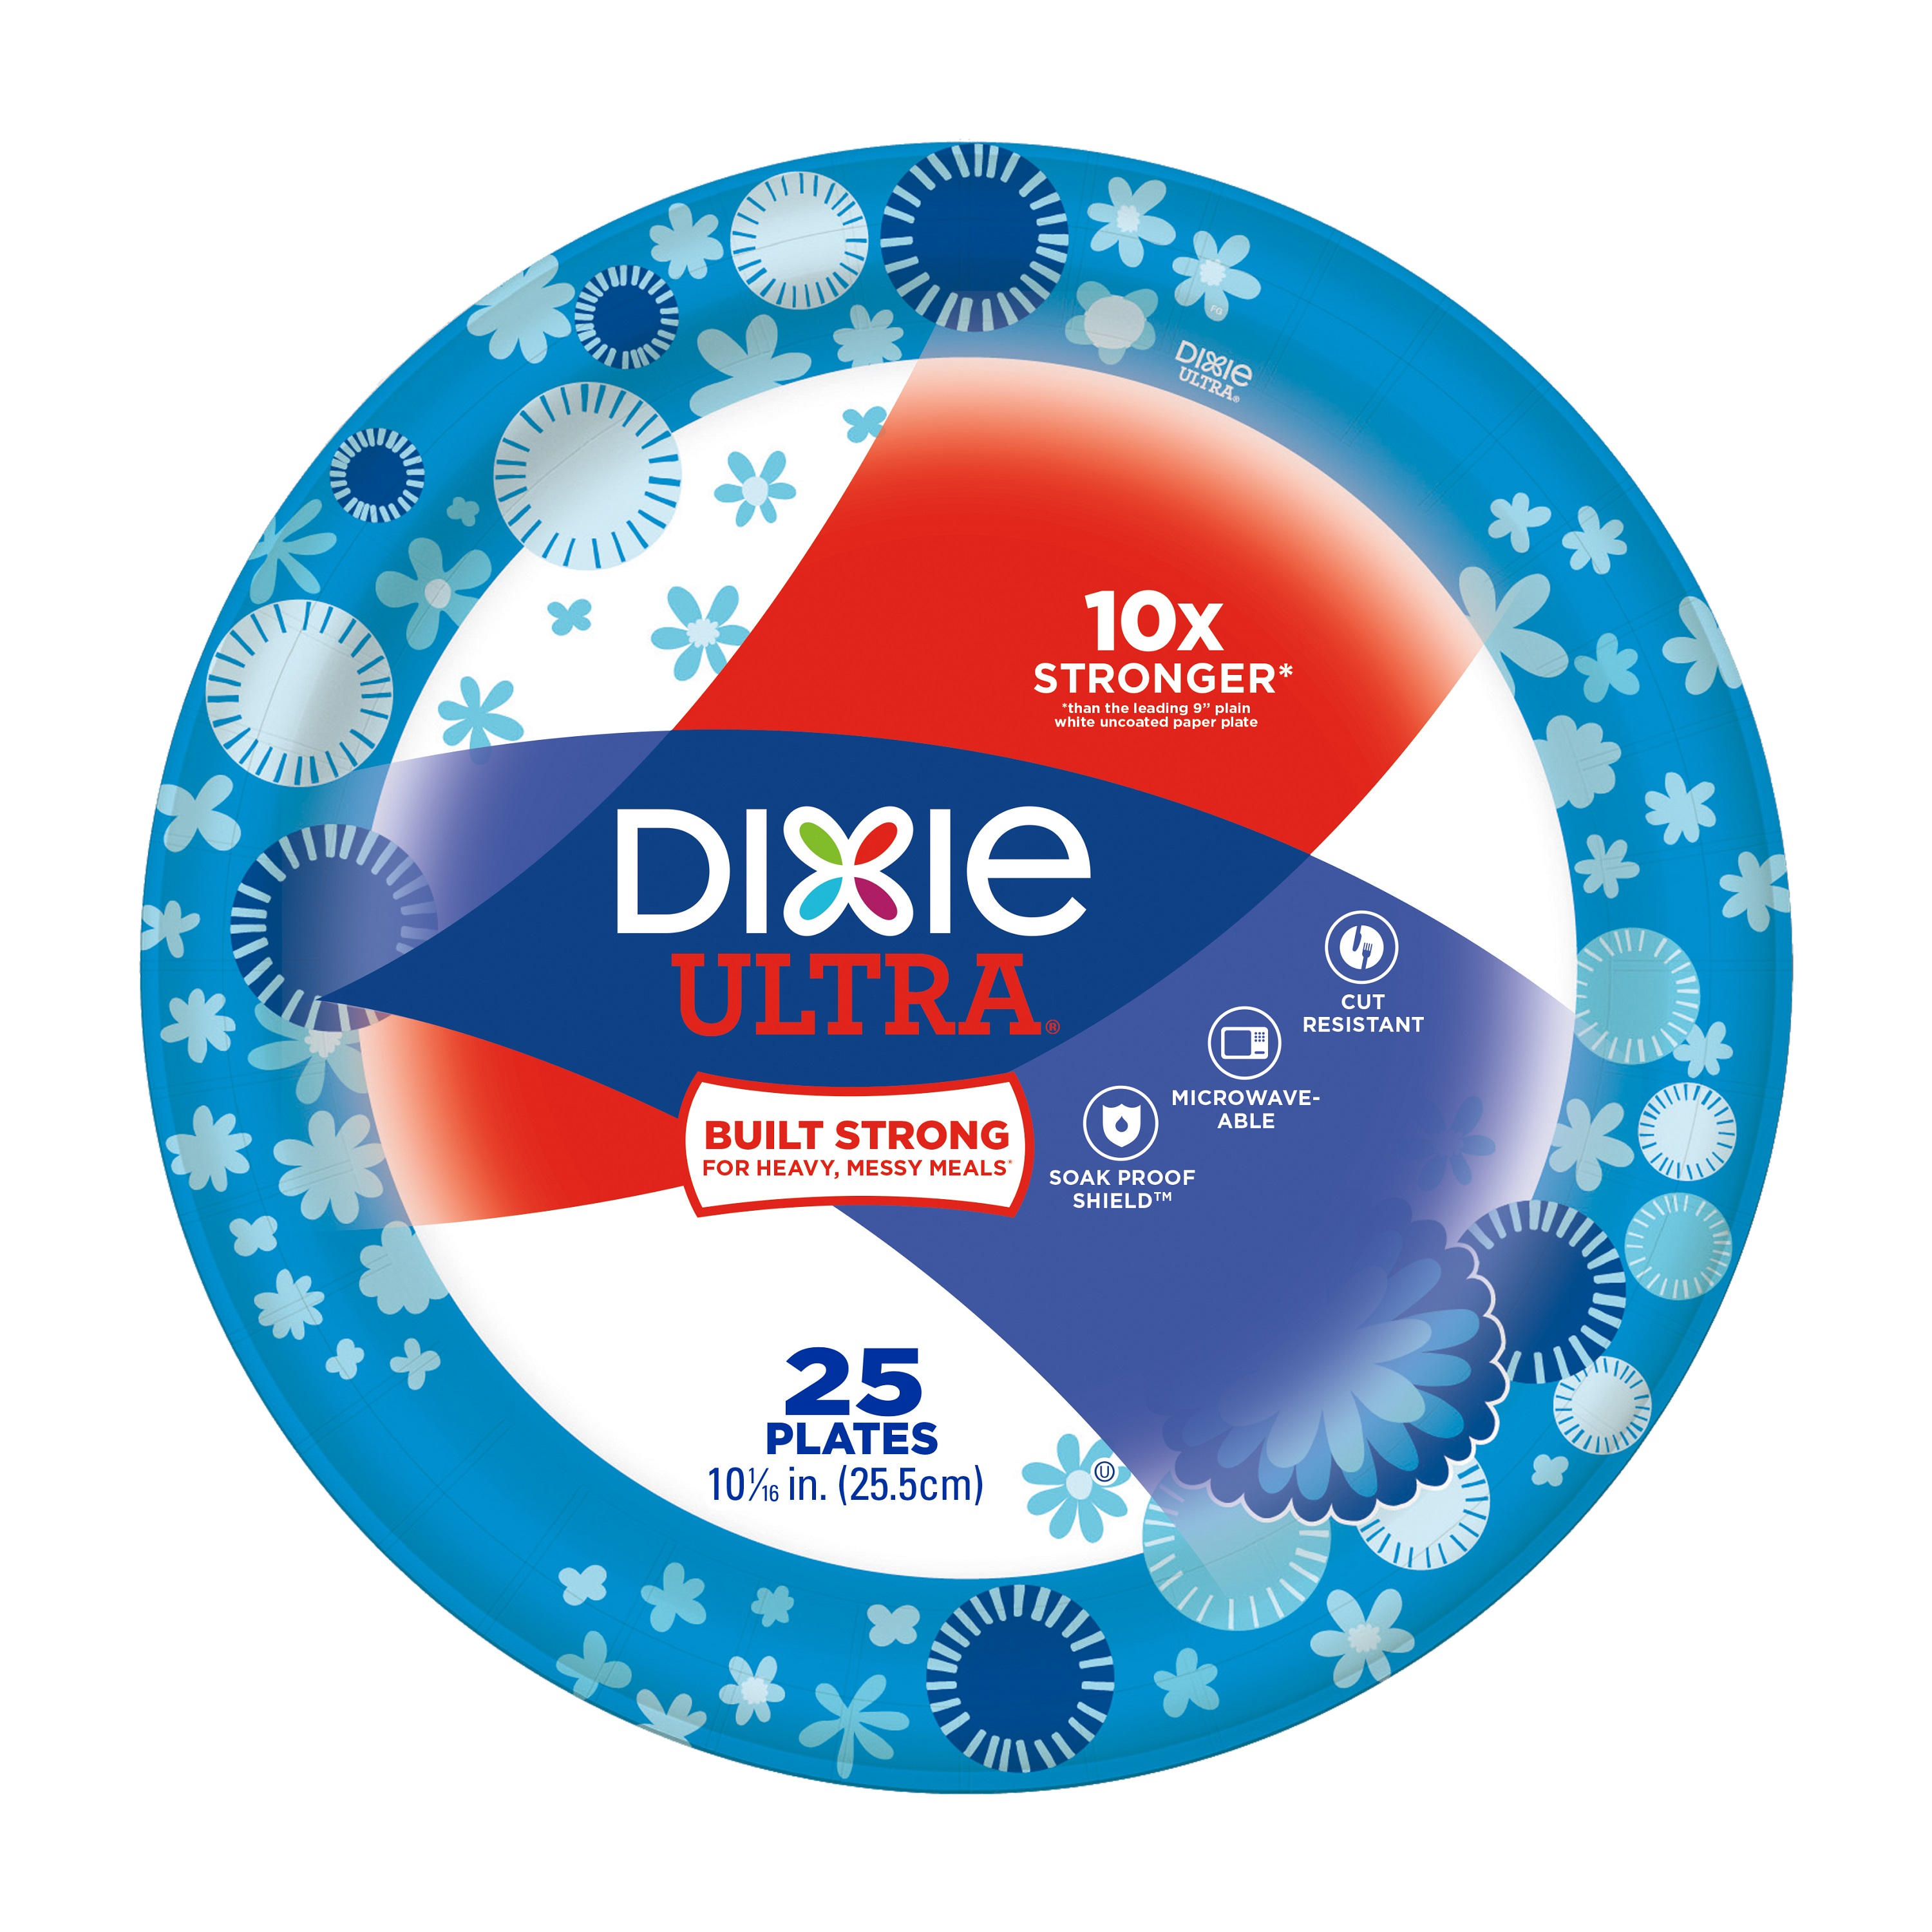 Dixie Ultra Plates, 25 count